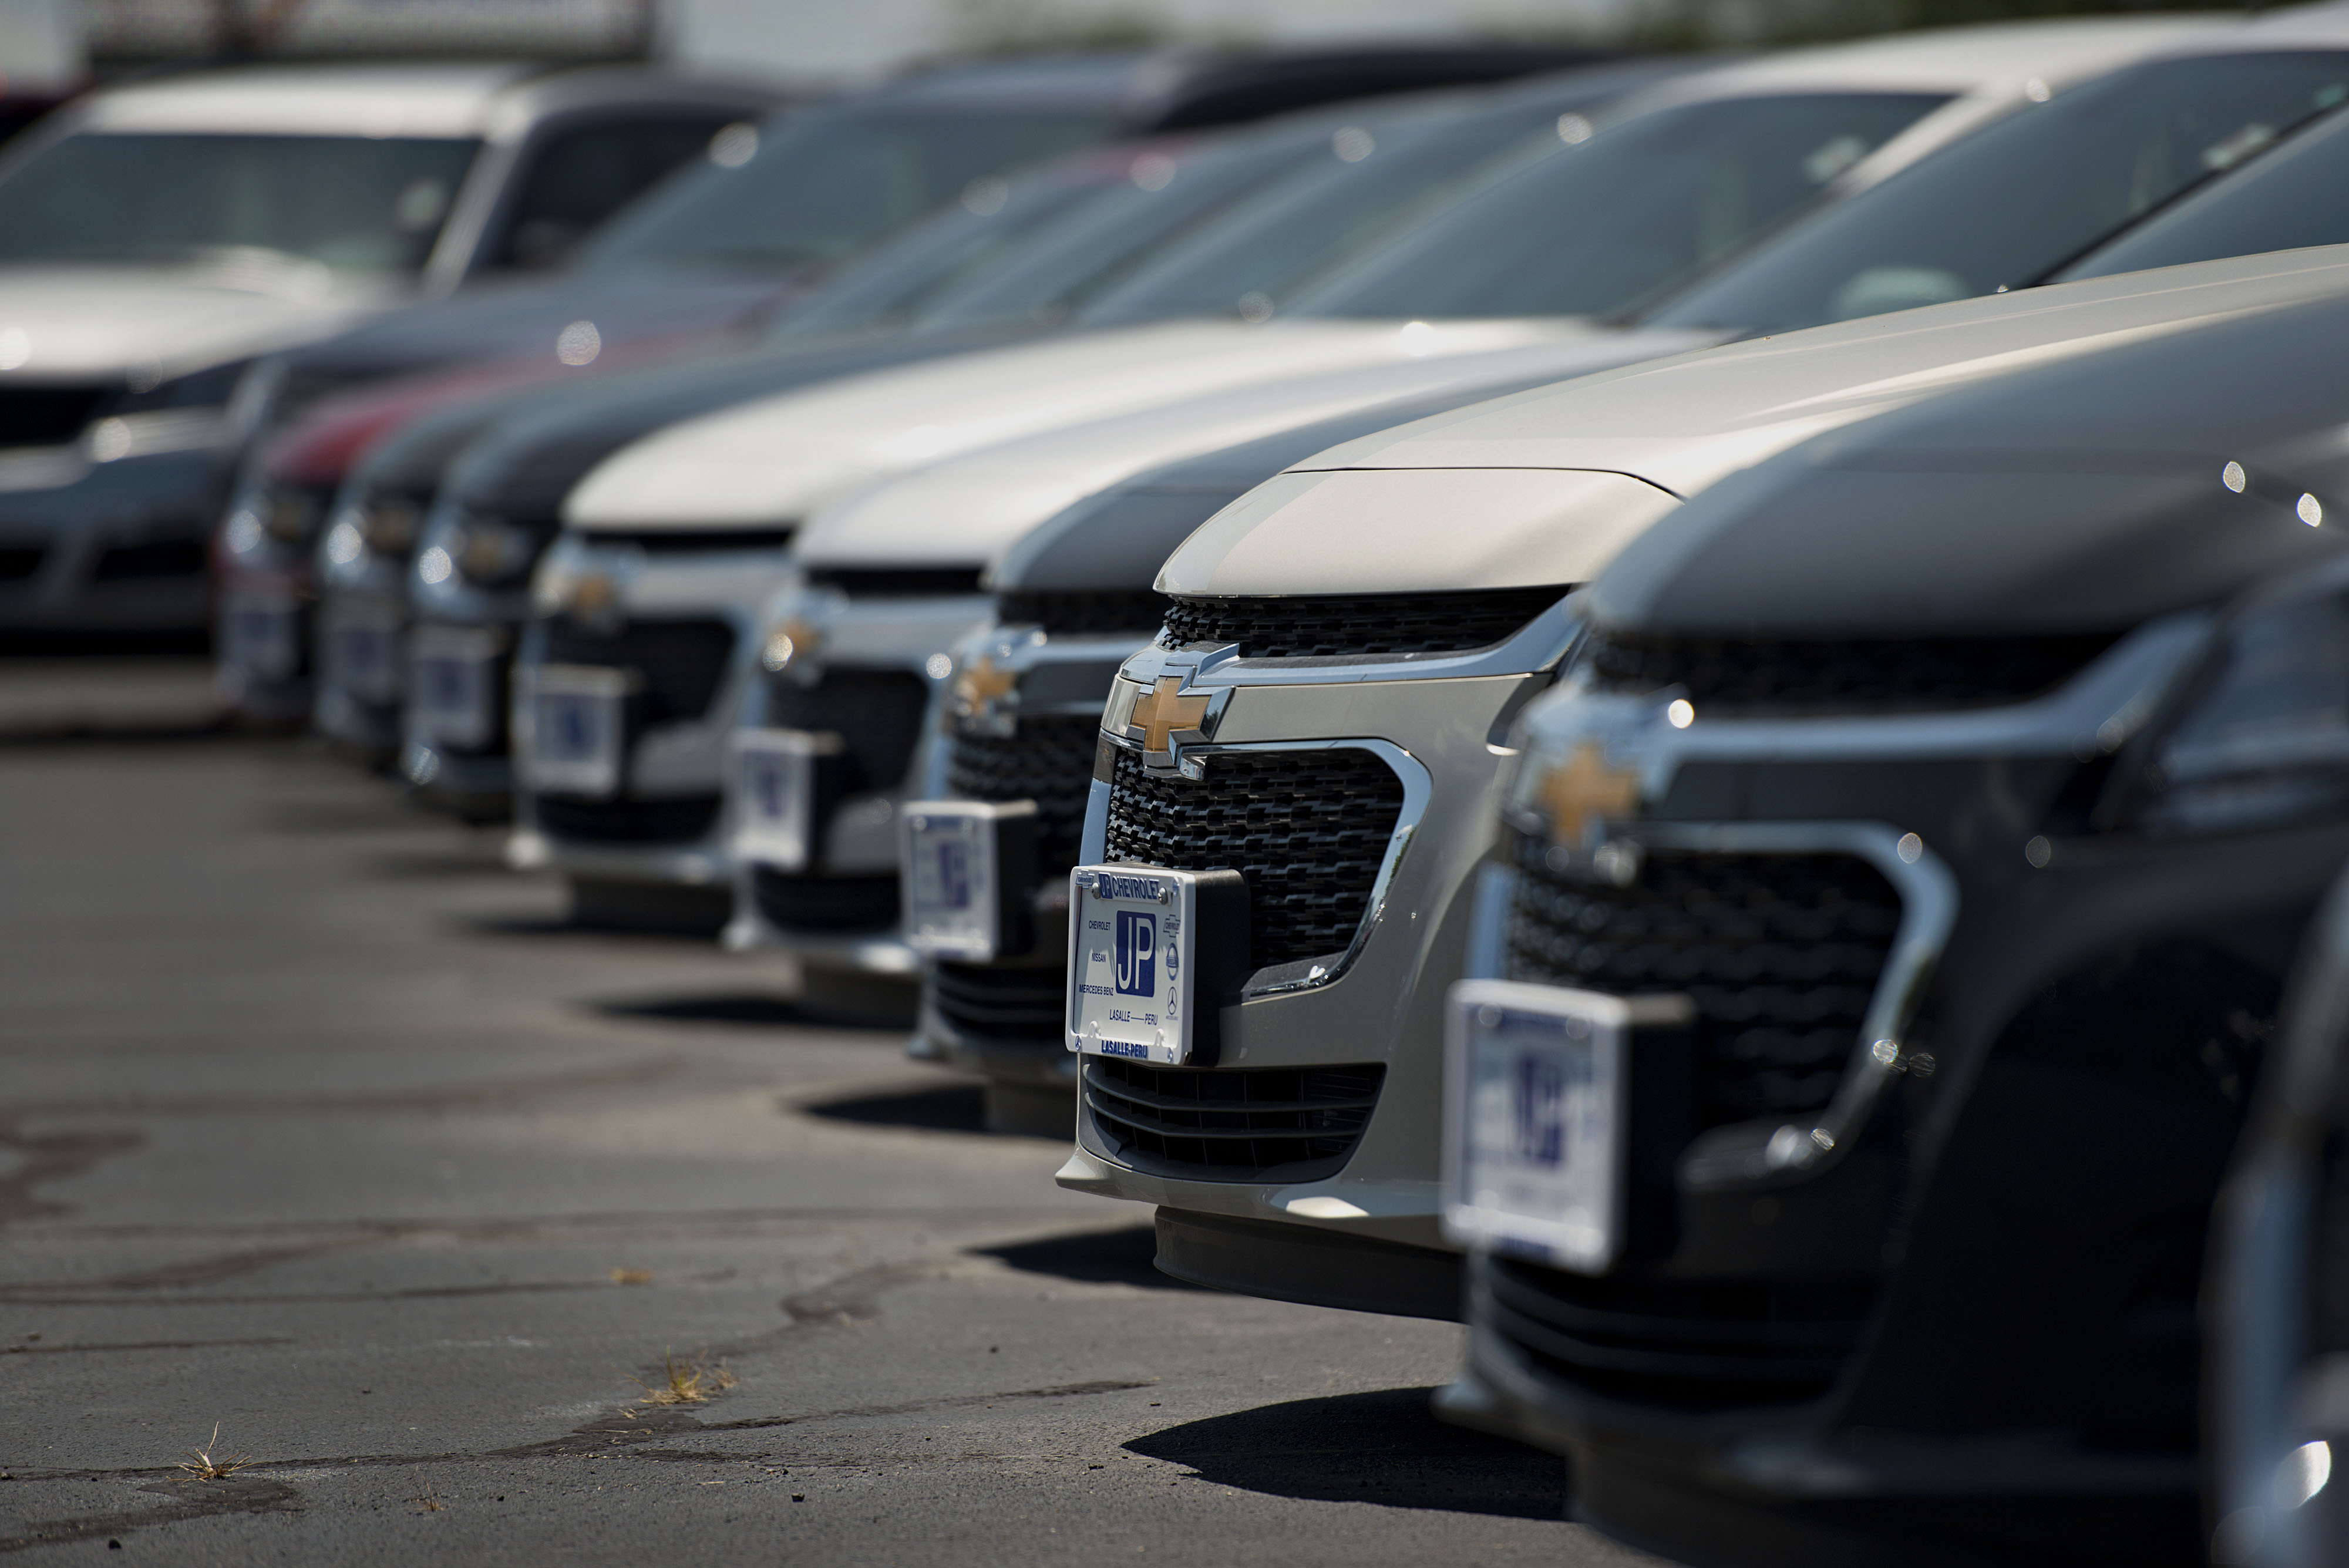 general motors co chevy malibu vehicles sit on the lot at jp chevrolet dealership in